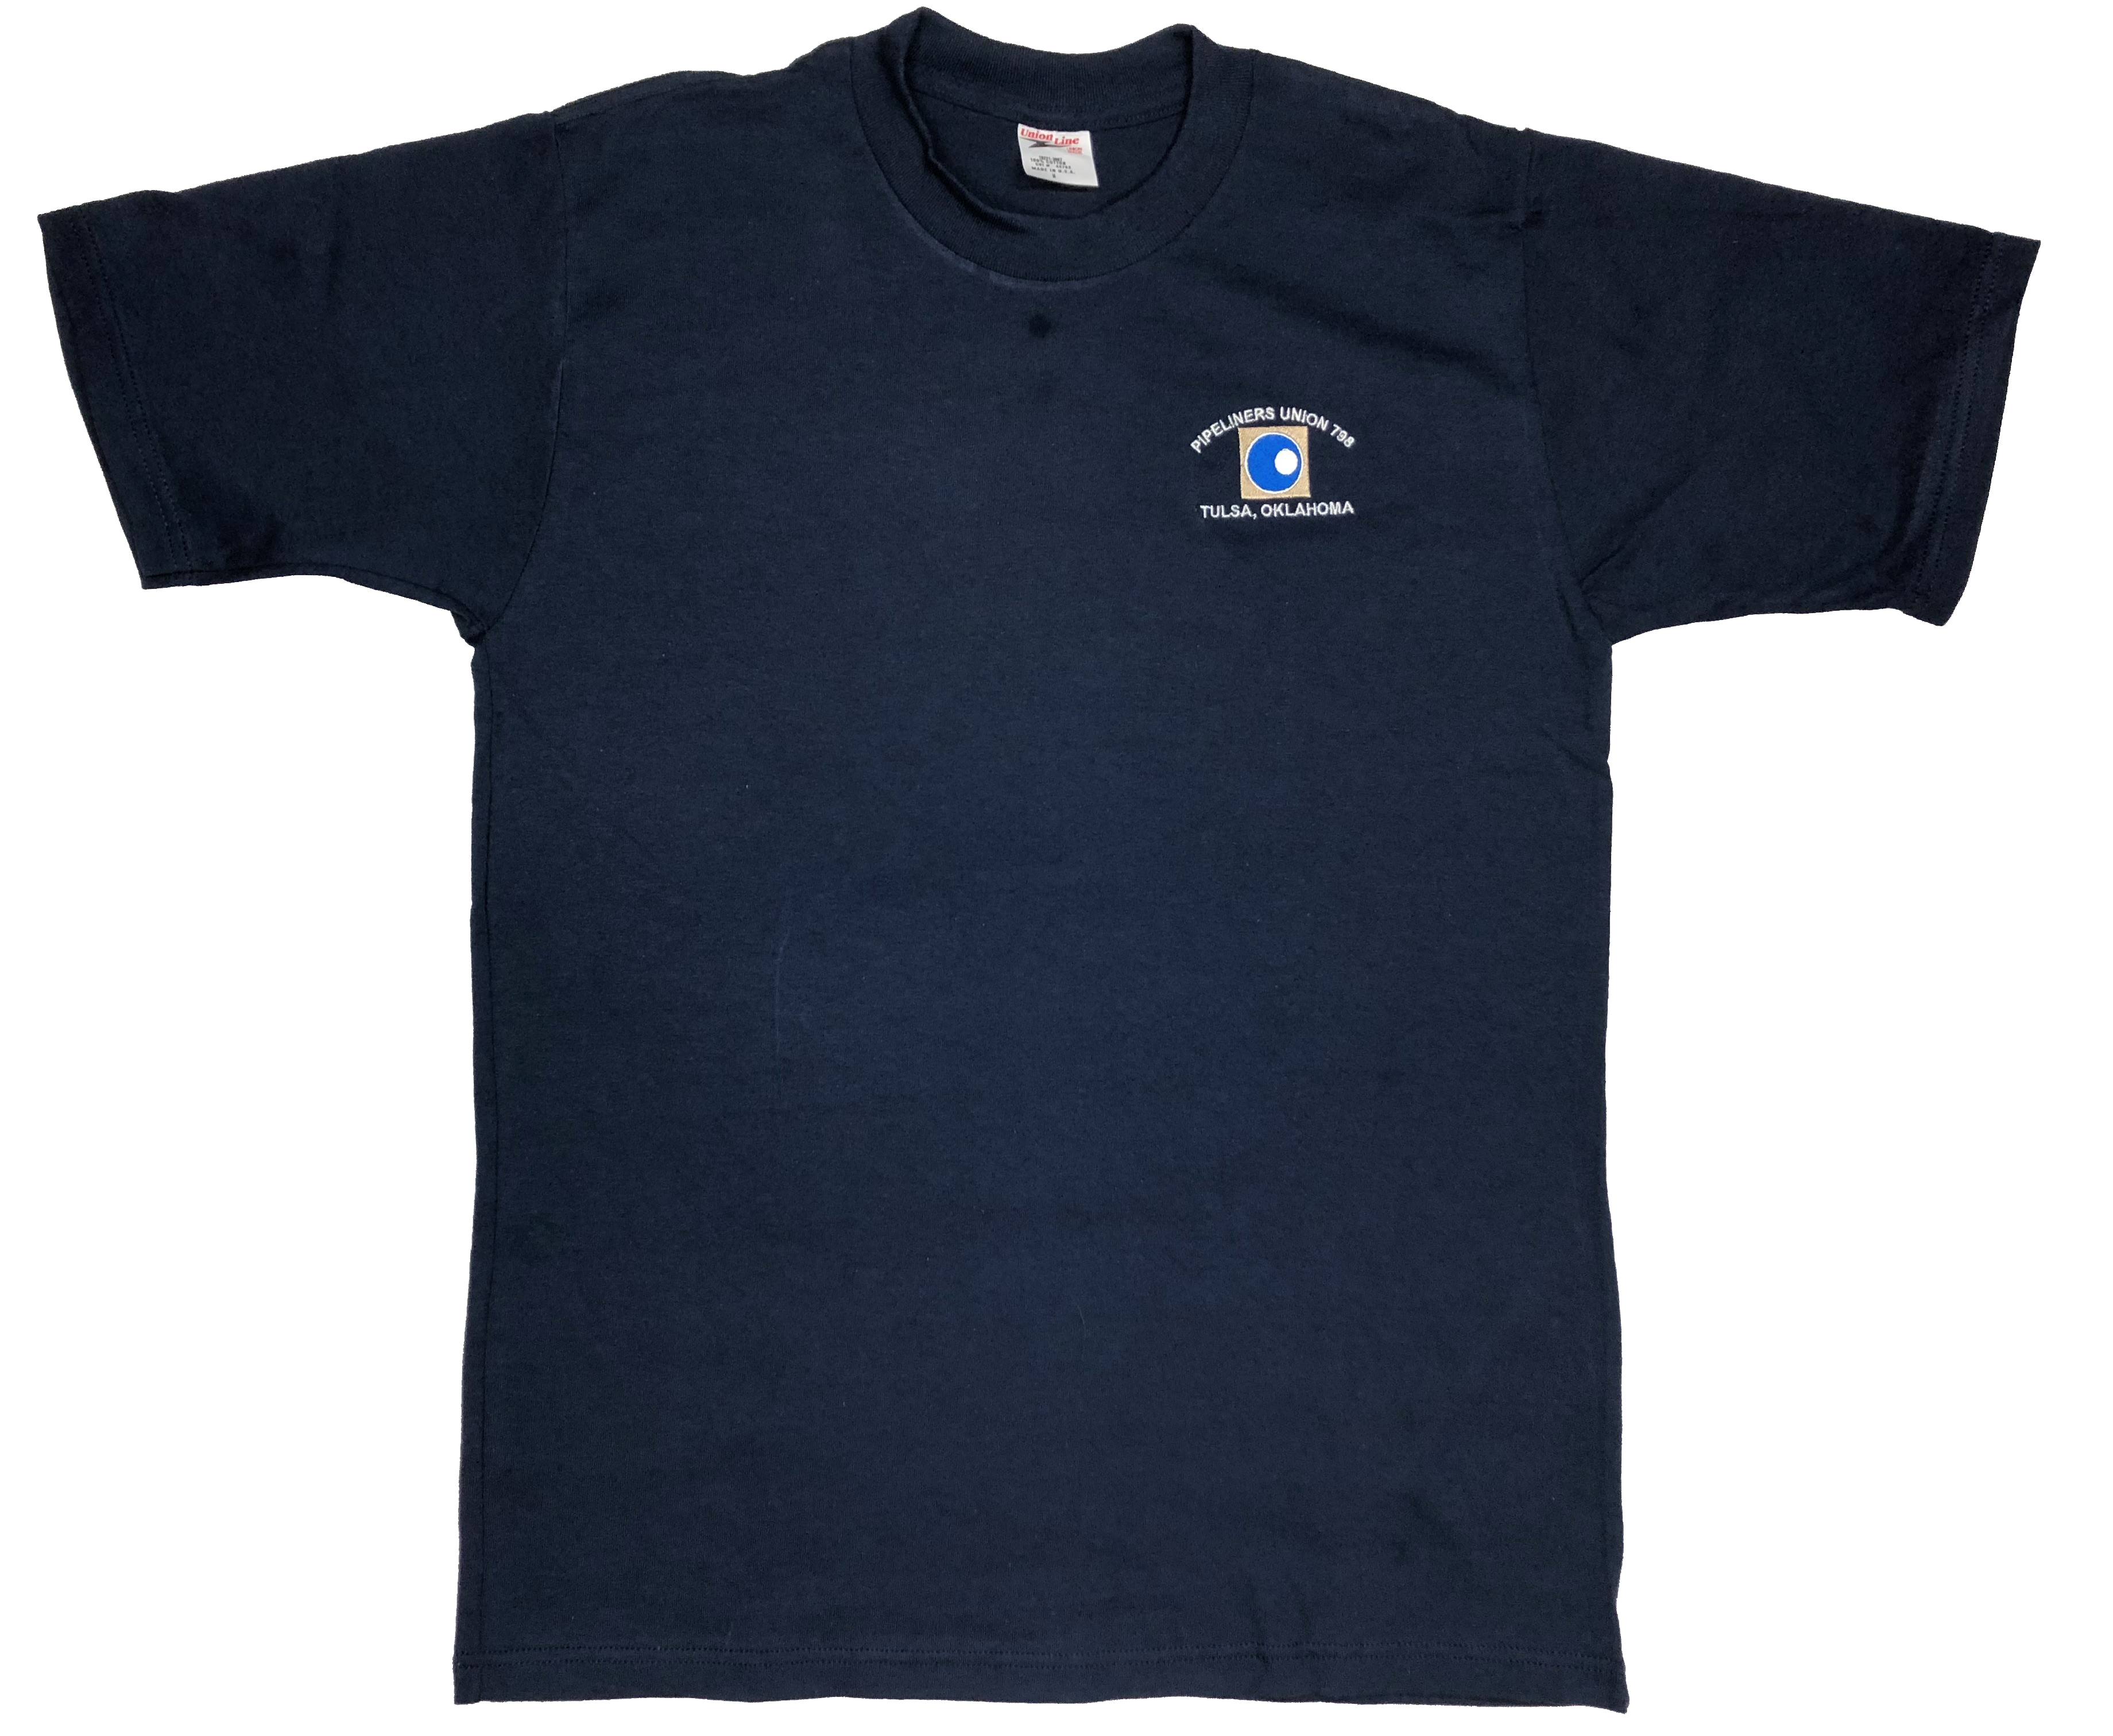 0183417a72e Navy T-Shirt w embroidered Logo - Local 798